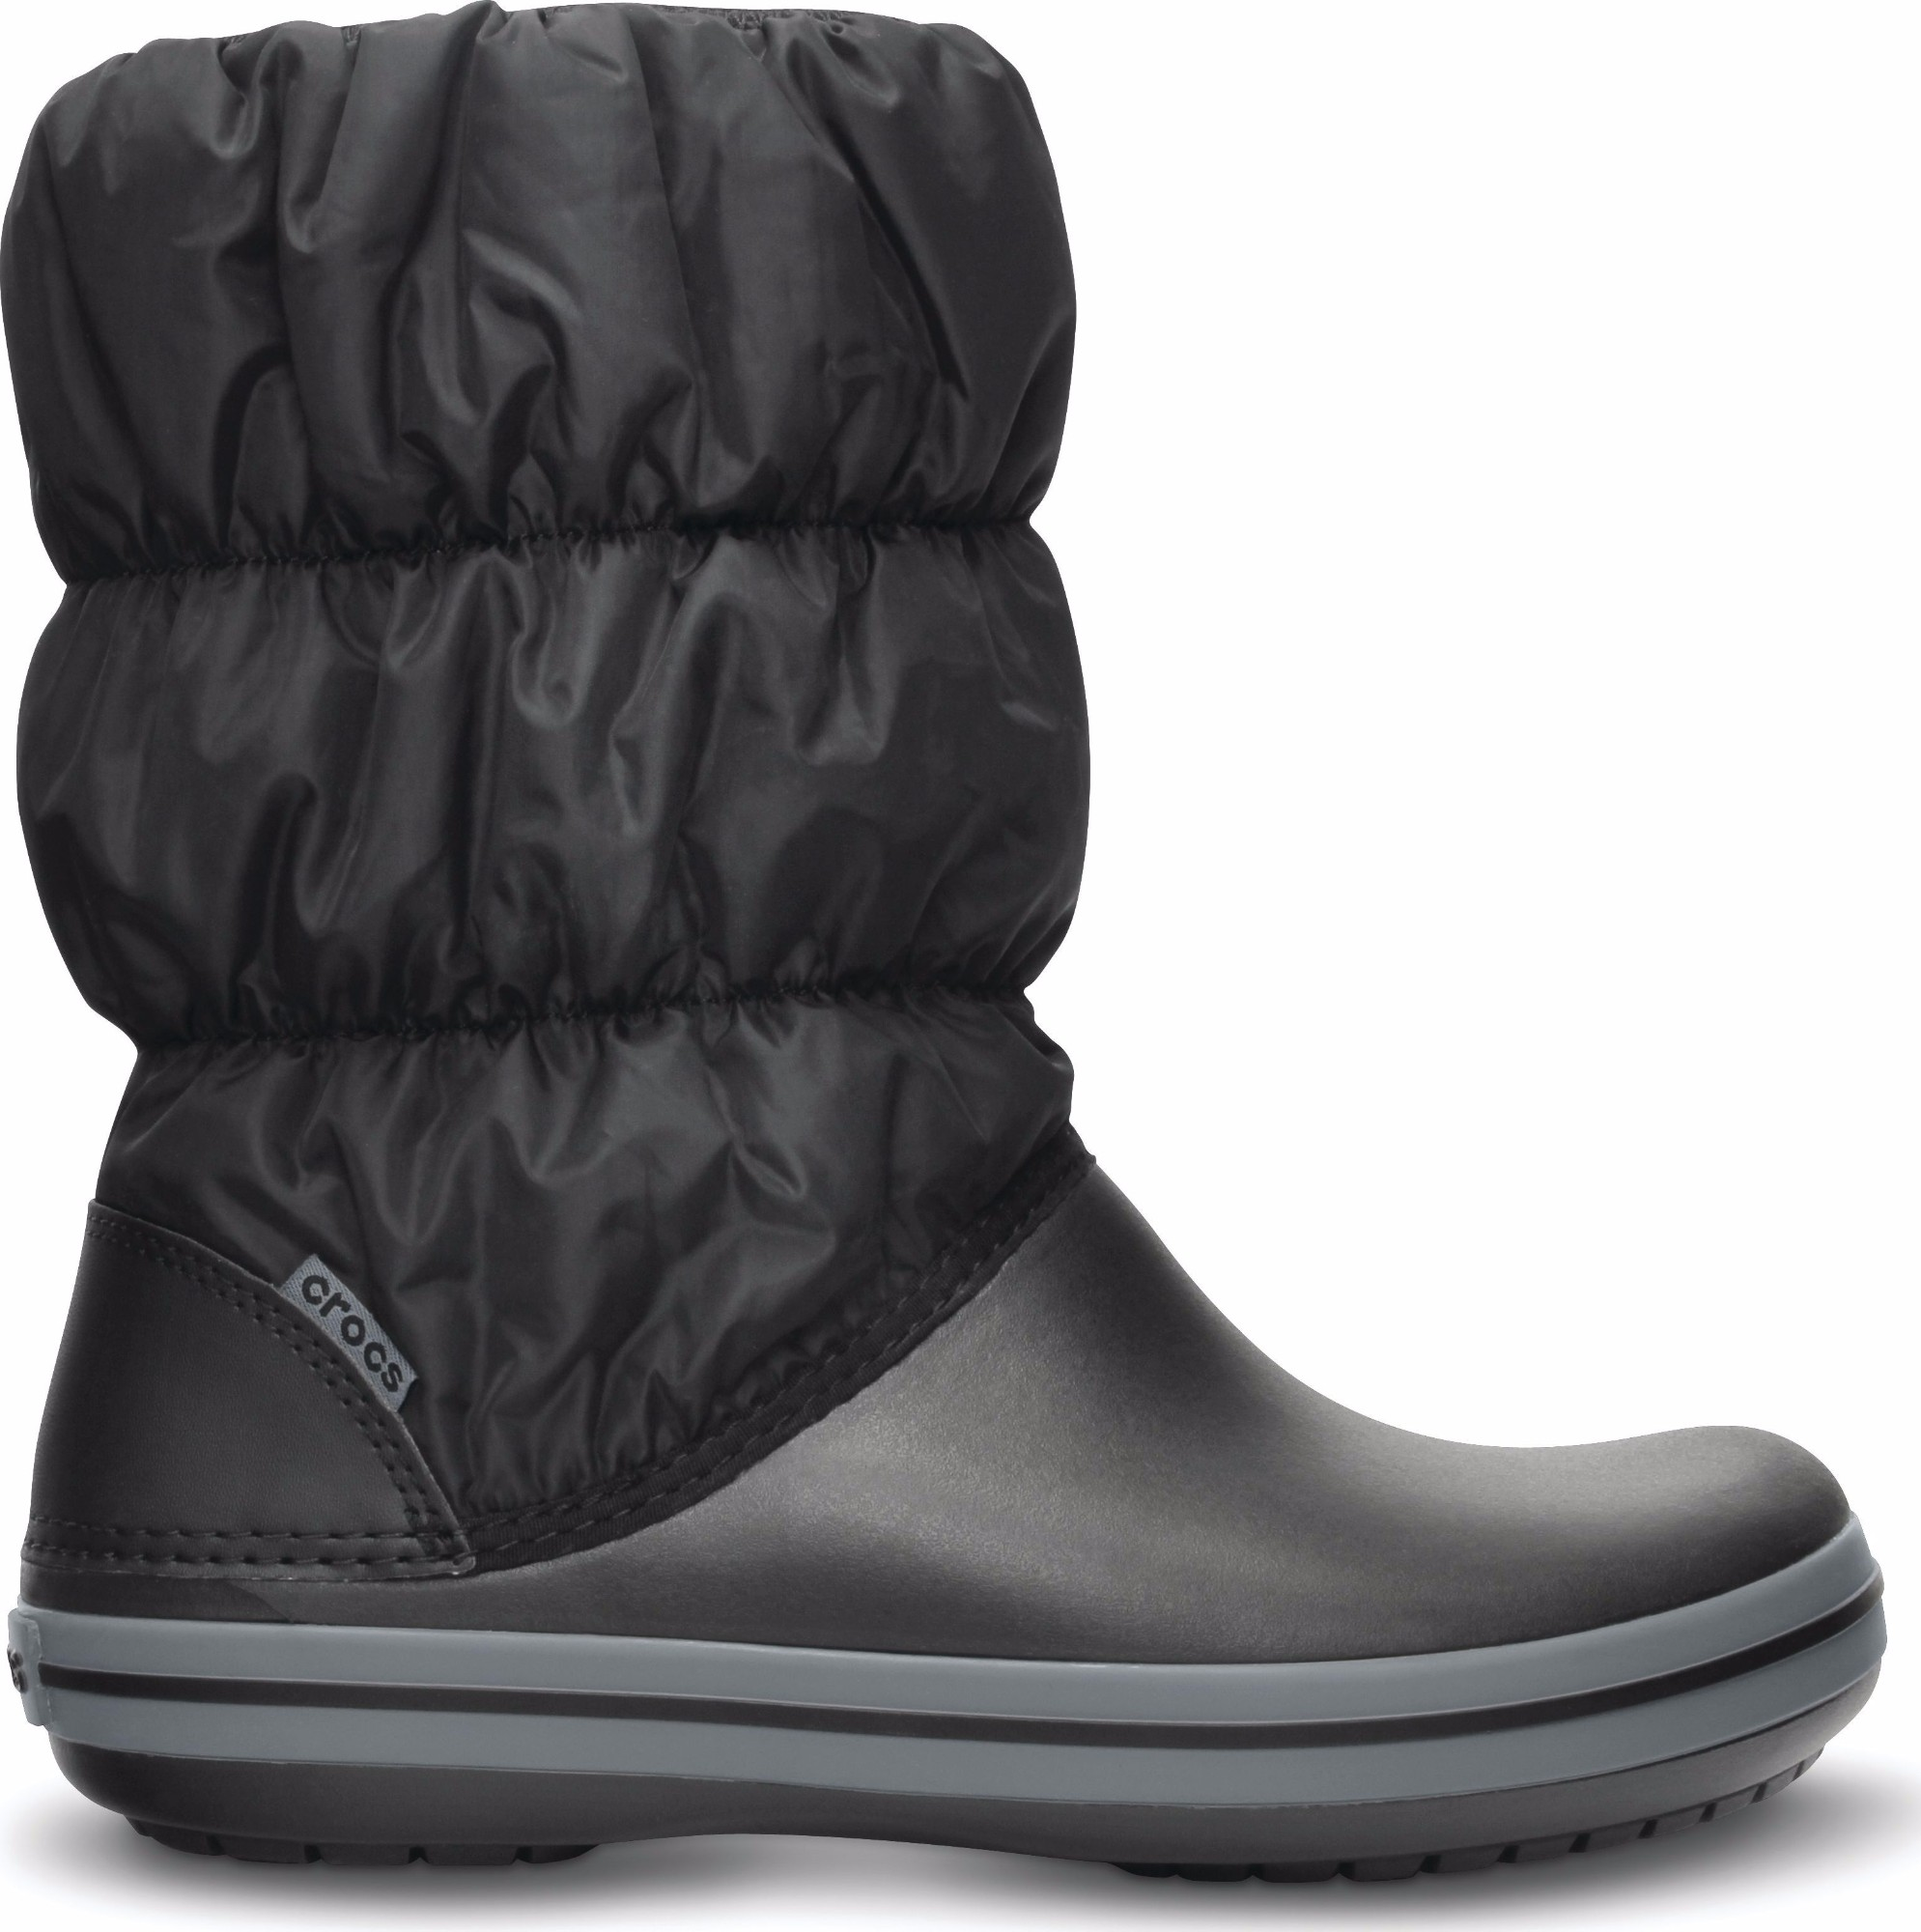 Crocs™ Winter Puff Boot Black/Charcoal 35